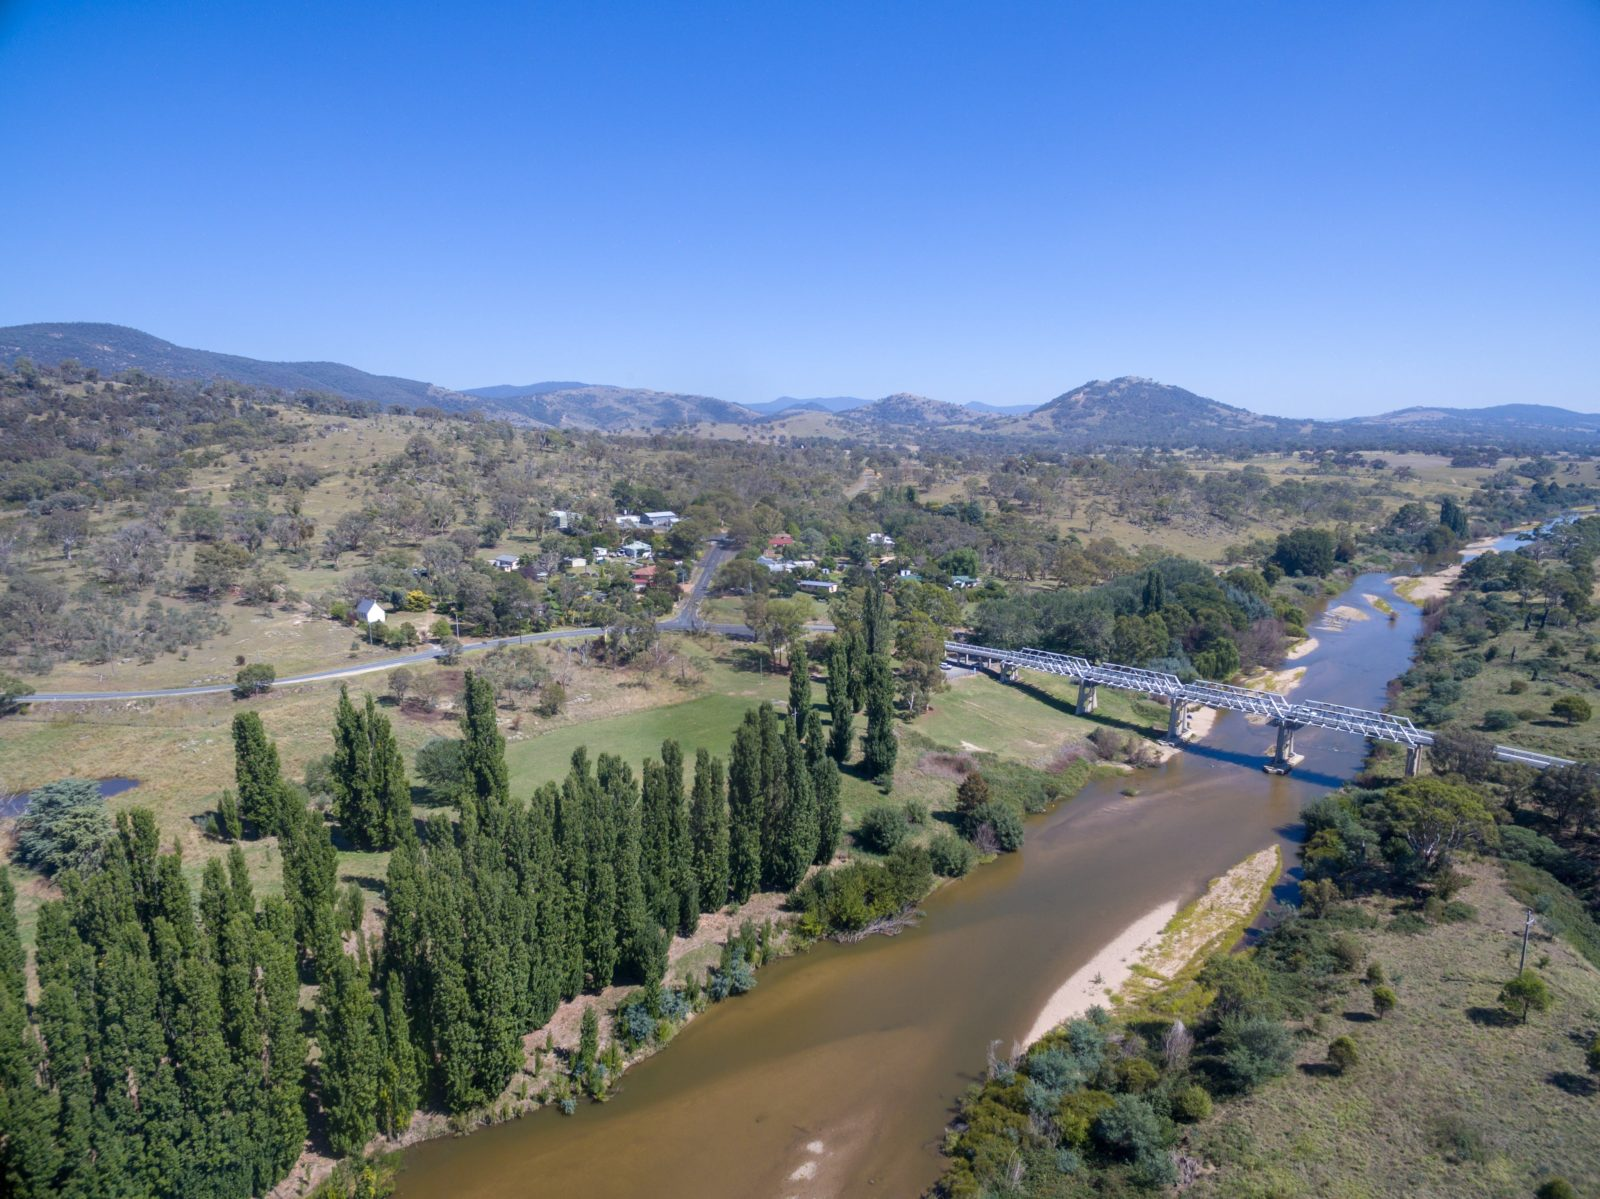 aerial photo of the Murrumbidgee river with the Tharwa Bridge crossing it